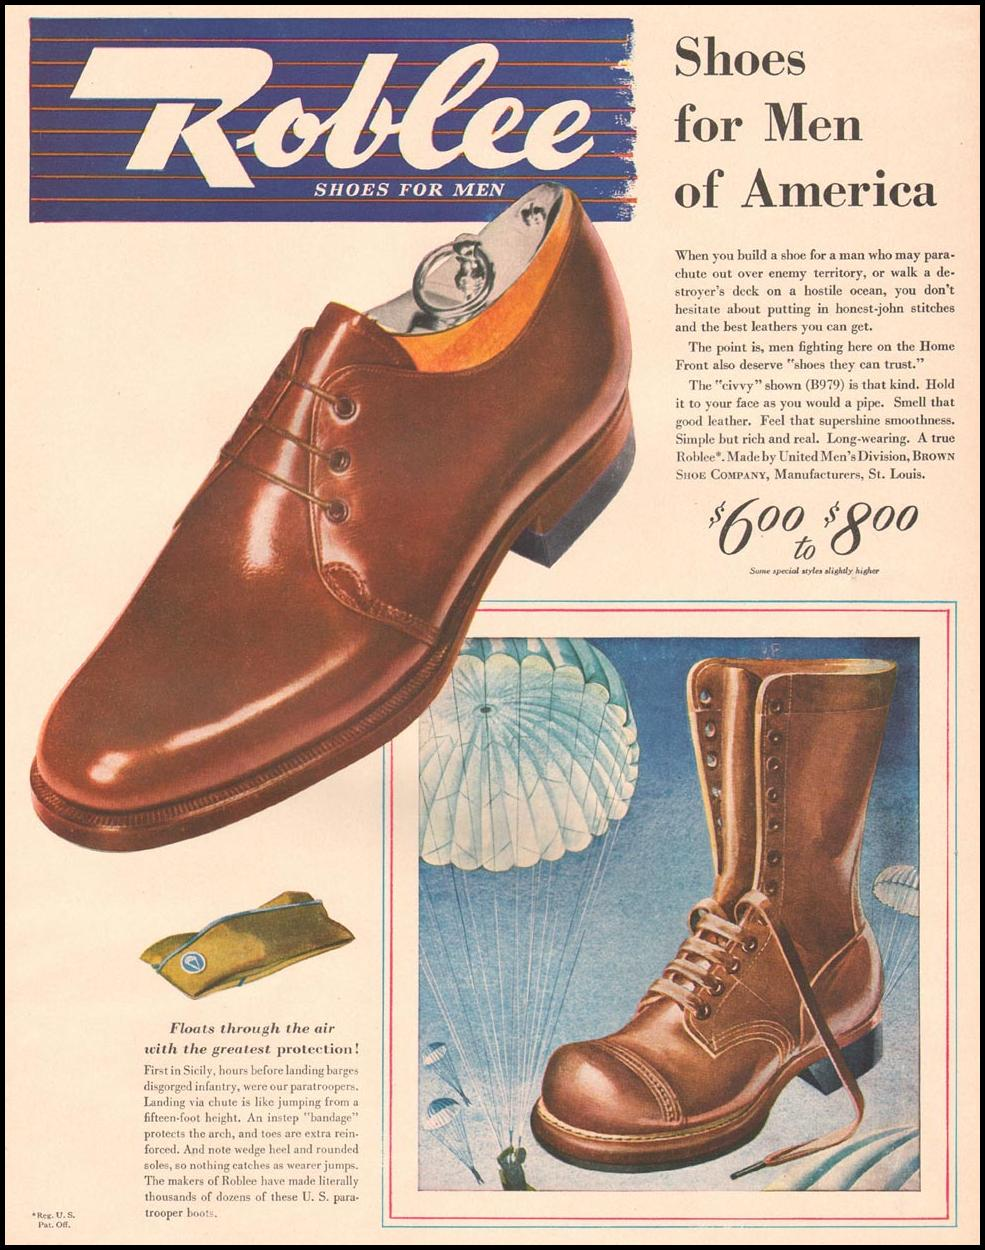 ROBLEE SHOES FOR MEN LIFE 10/11/1943 p. 69